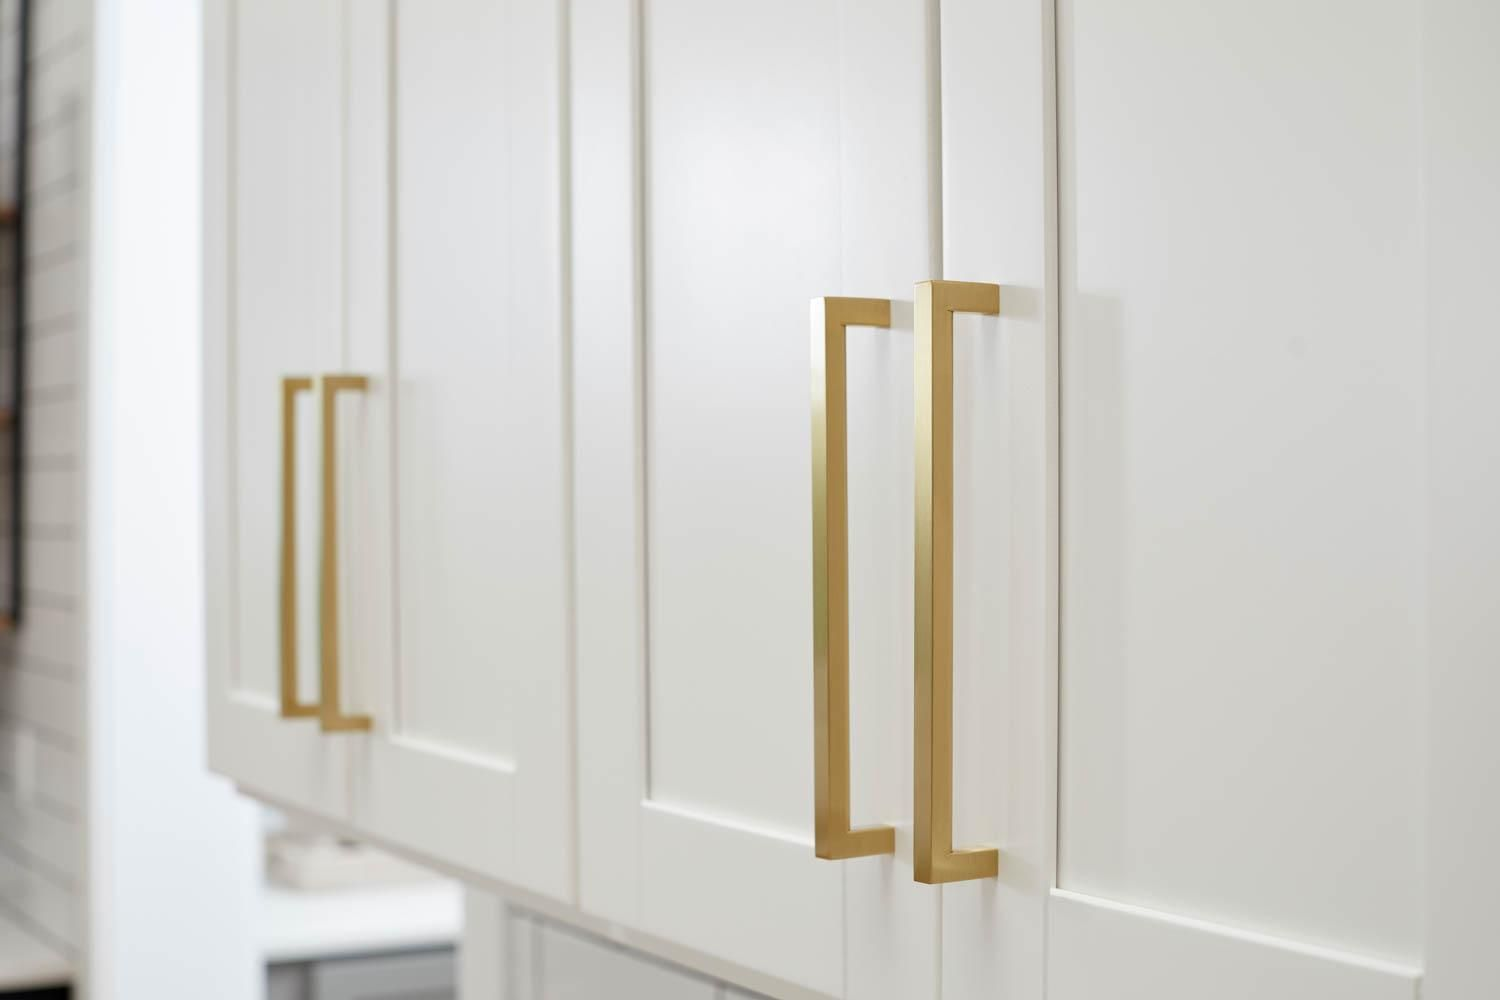 Modern Gold Handles Are A Stunning Accent To The White Cabinets Condo Decorating House Design Gold Handles